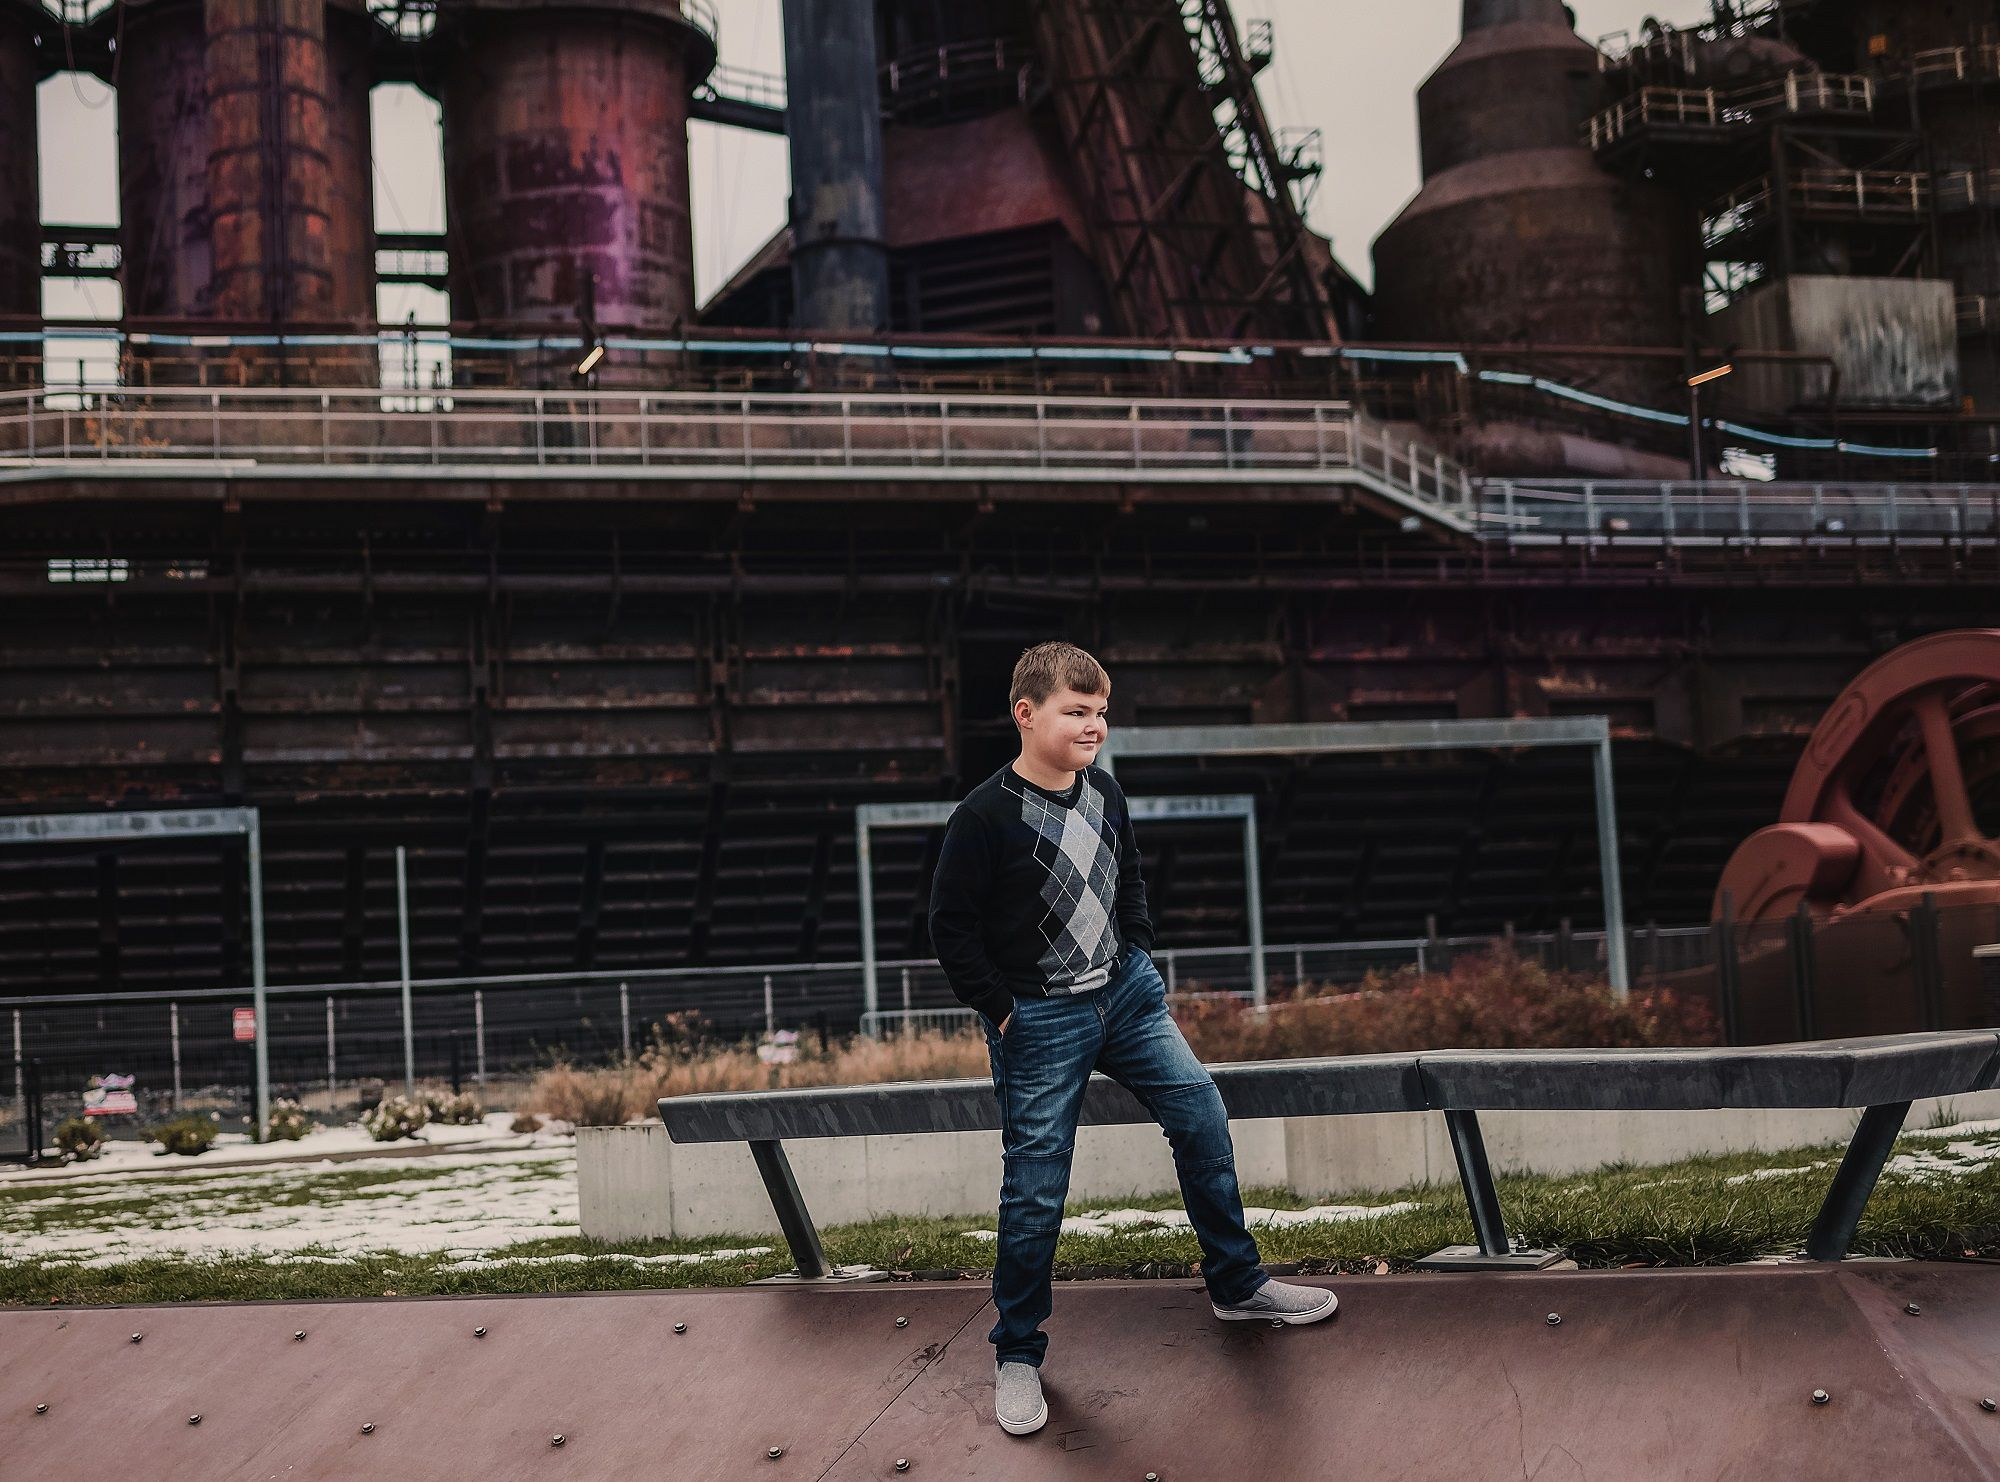 Boy at the steel stacks Allentown, PA